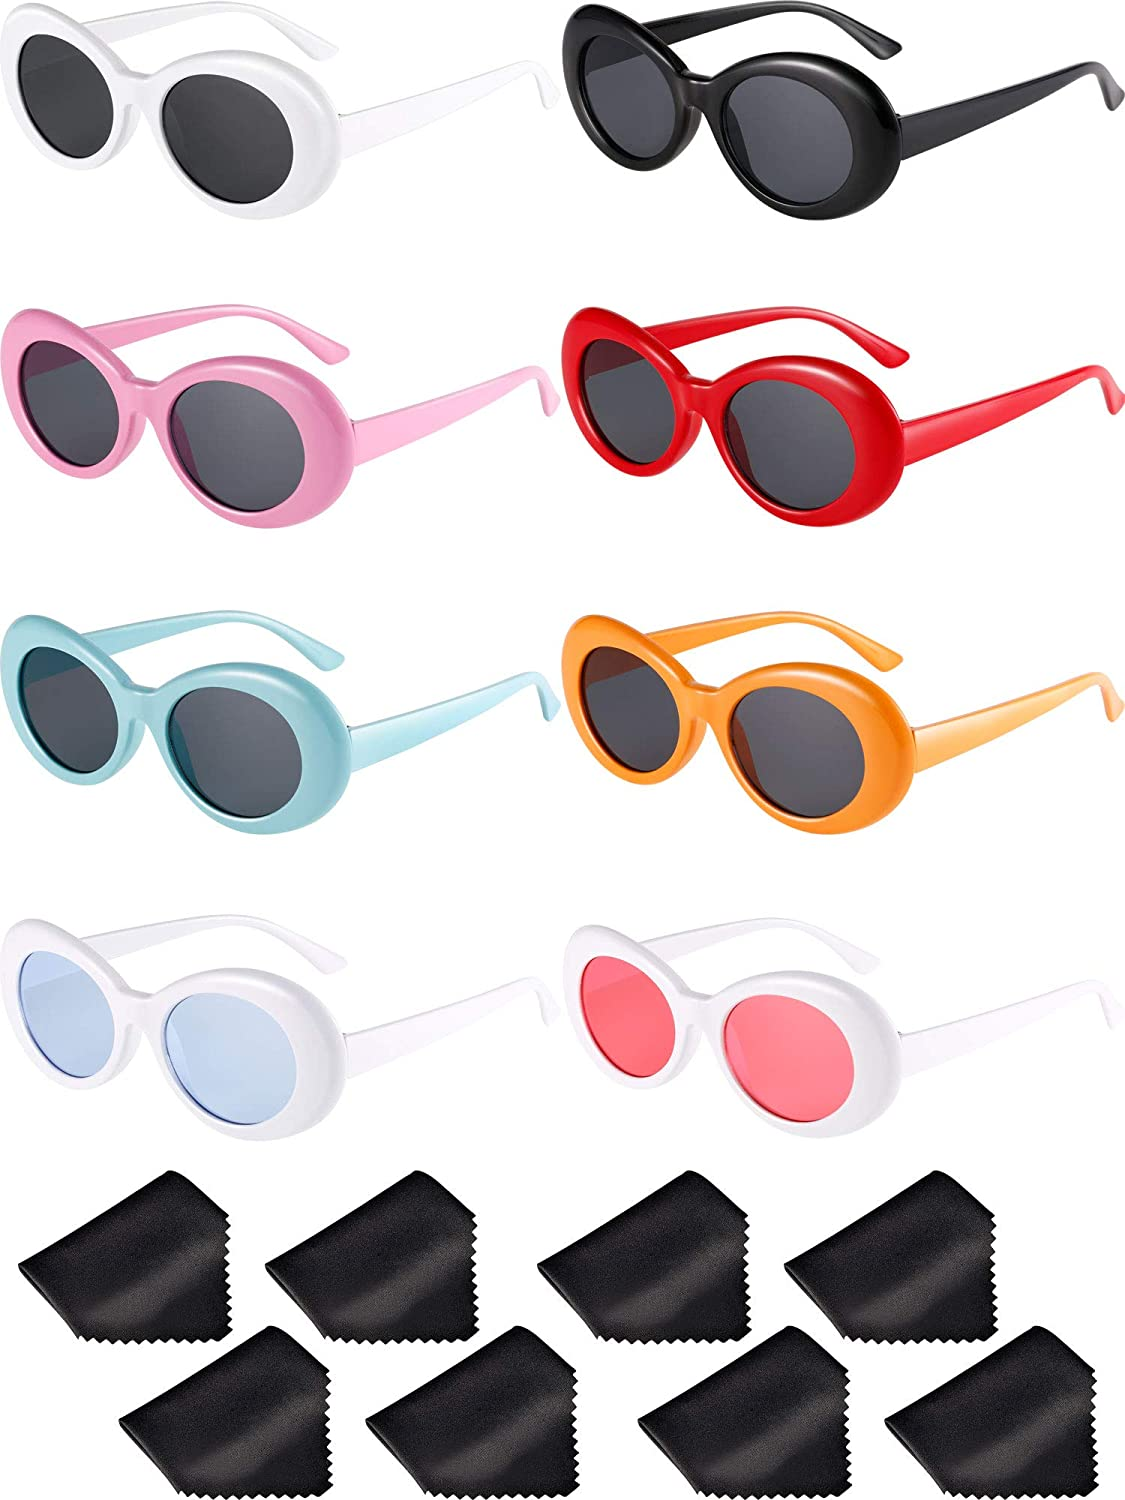 8 Pairs of Clout Oval Goggles Retro Kurt Mod Thick Frame Round Lens Sunglasses Goggles 8 Colors for Women Men (color 1) Gejoy